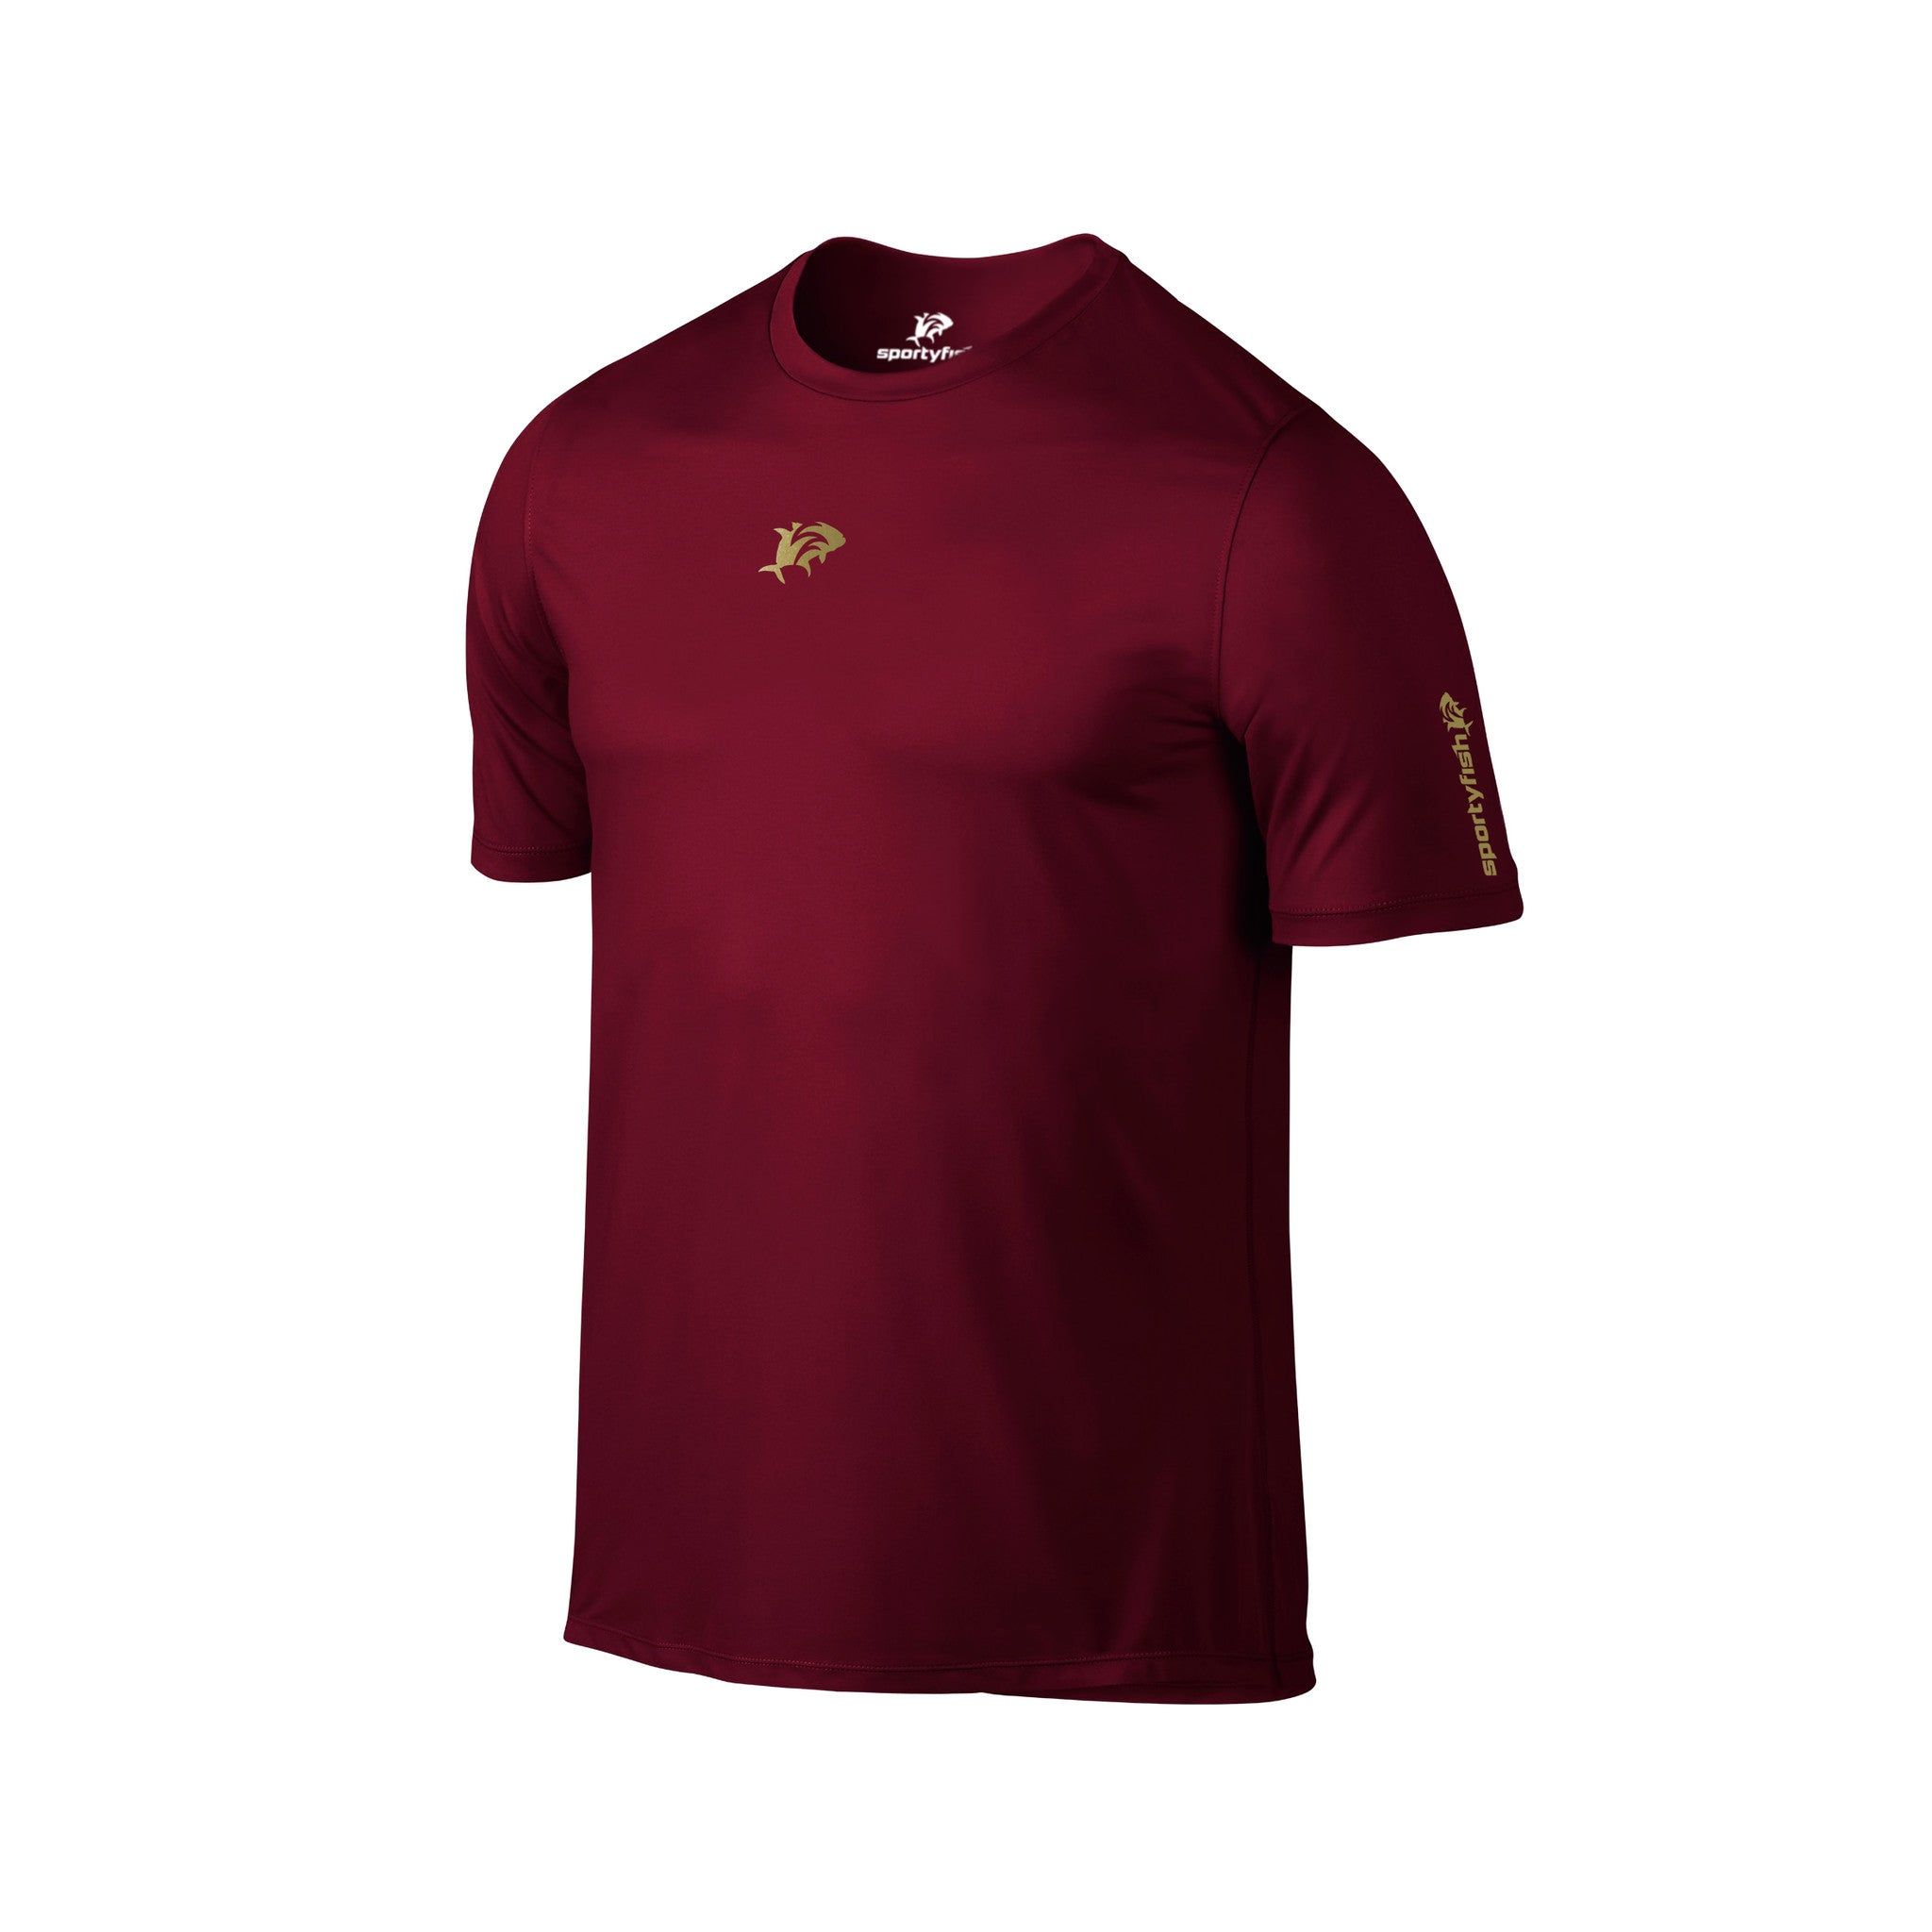 SportyFish Silhouette Series Gold print Maroon T-shirt: Jig Masters front view